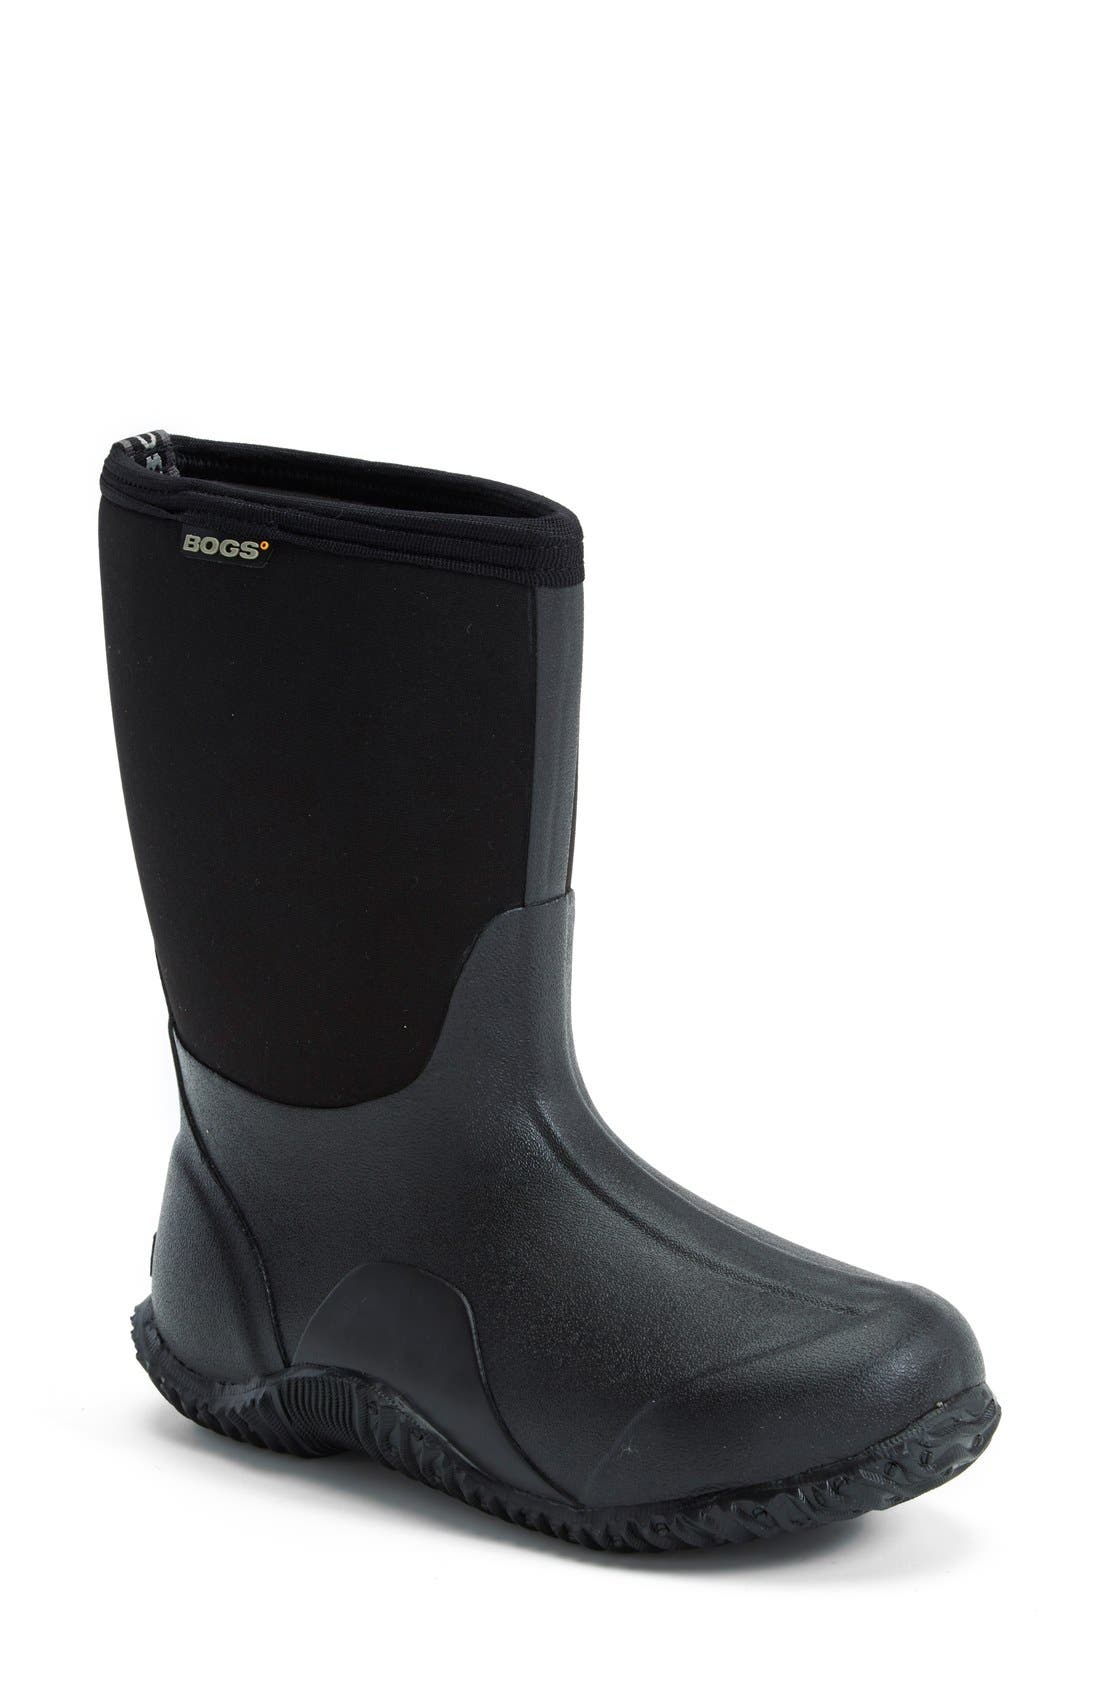 Main Image - Bogs 'Classic' Mid High Waterproof Snow Boot (Women)